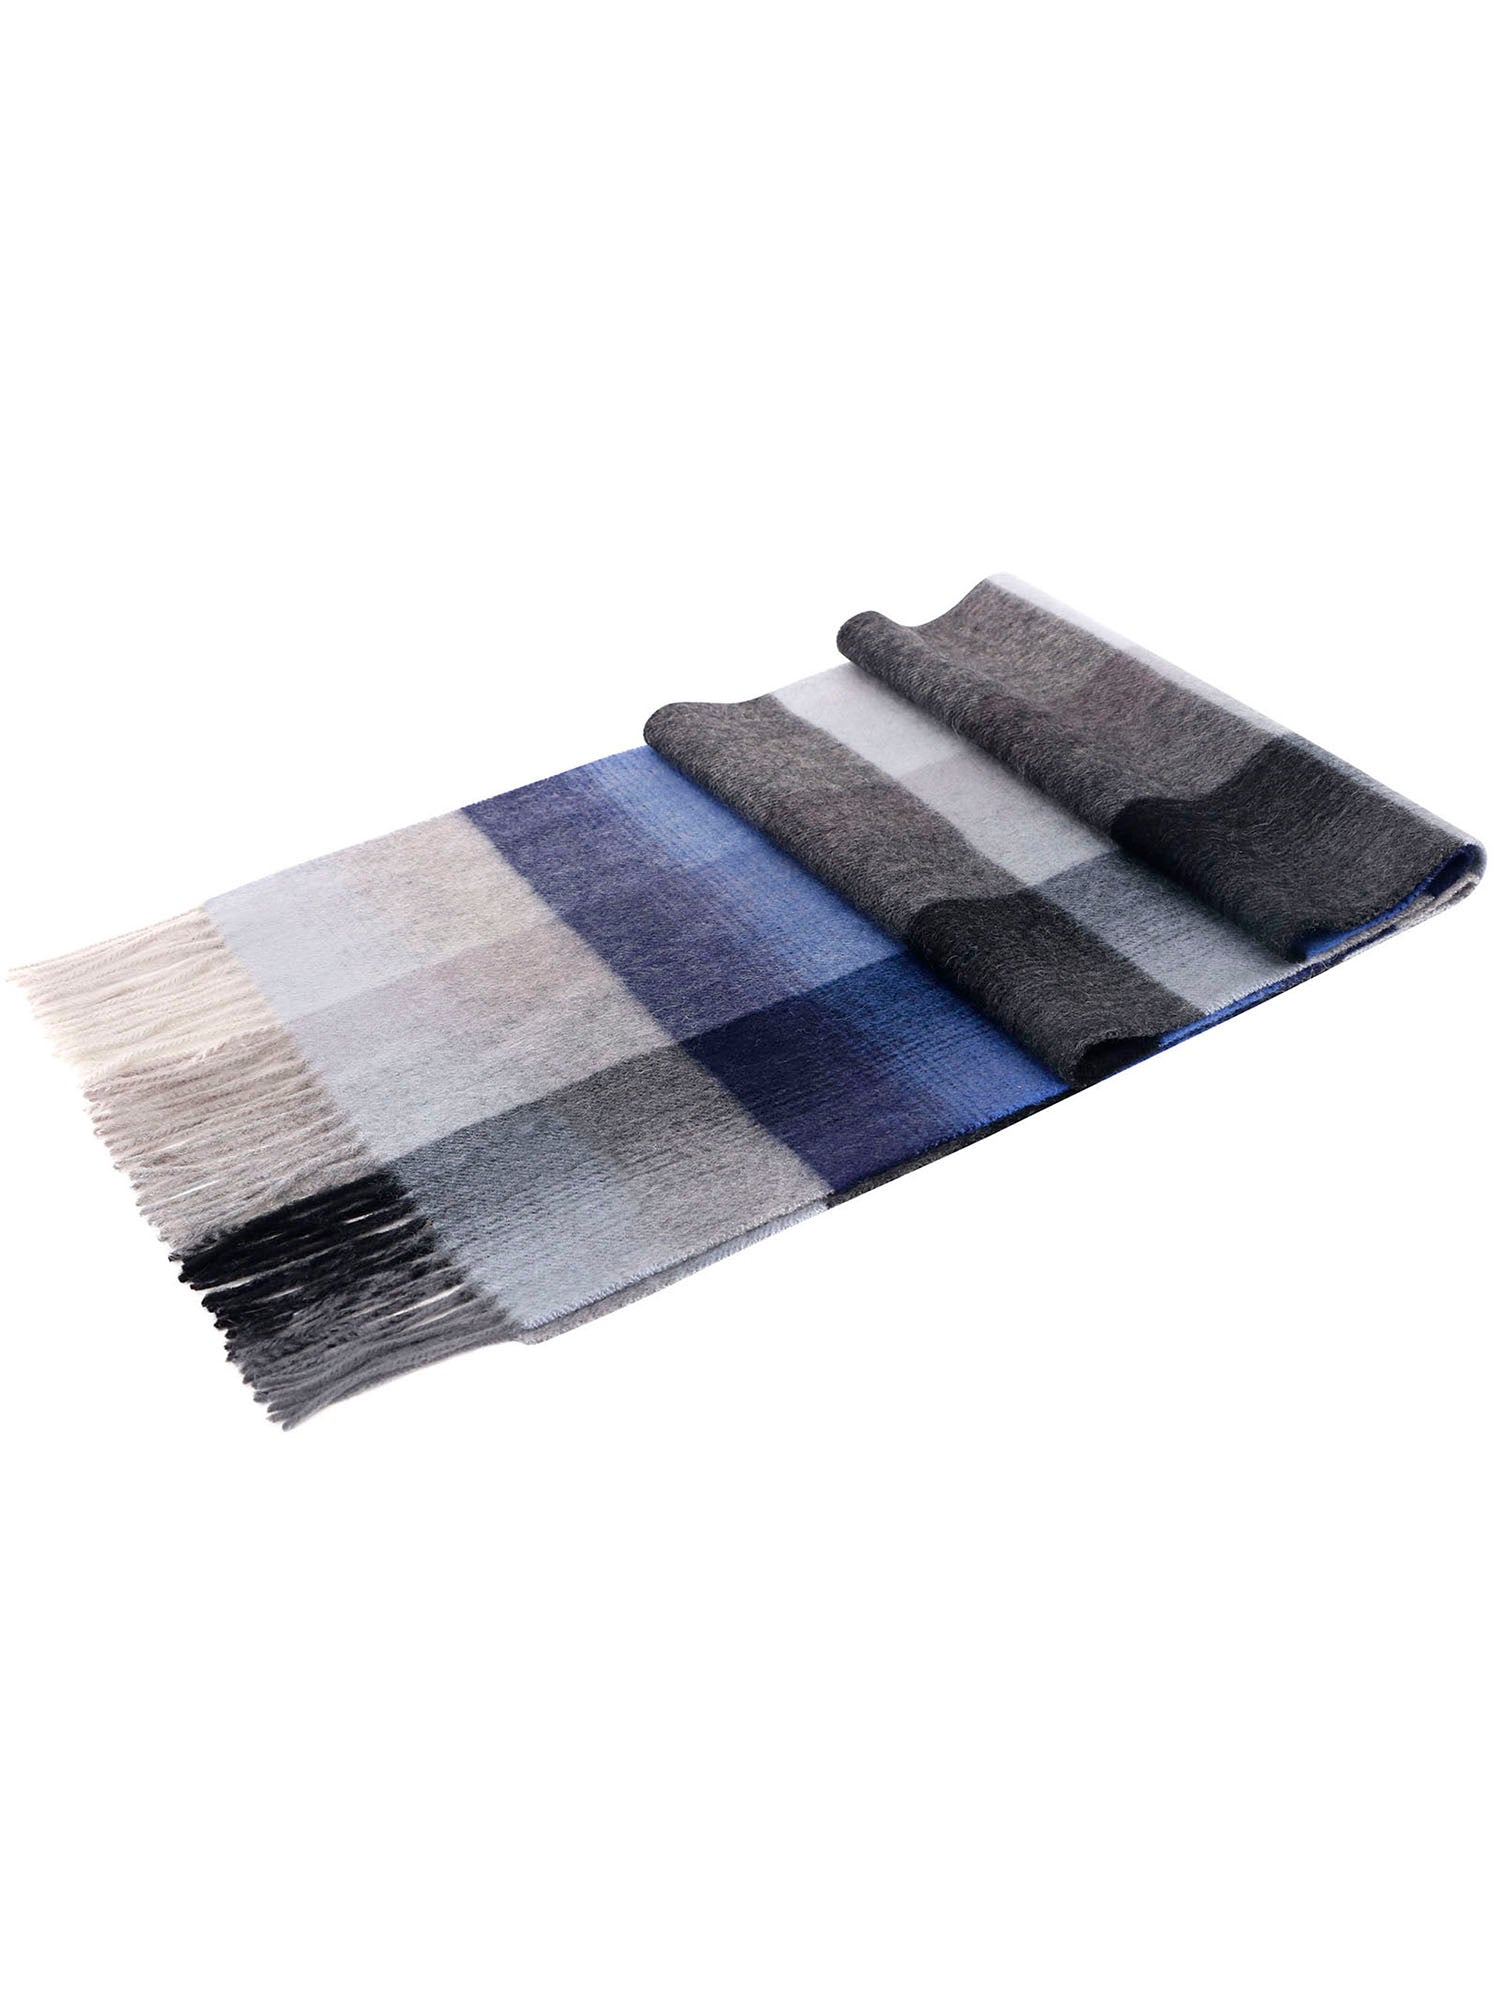 Women | Warm Winter Cashmere | Wool Soft Scarf | Long Tassel